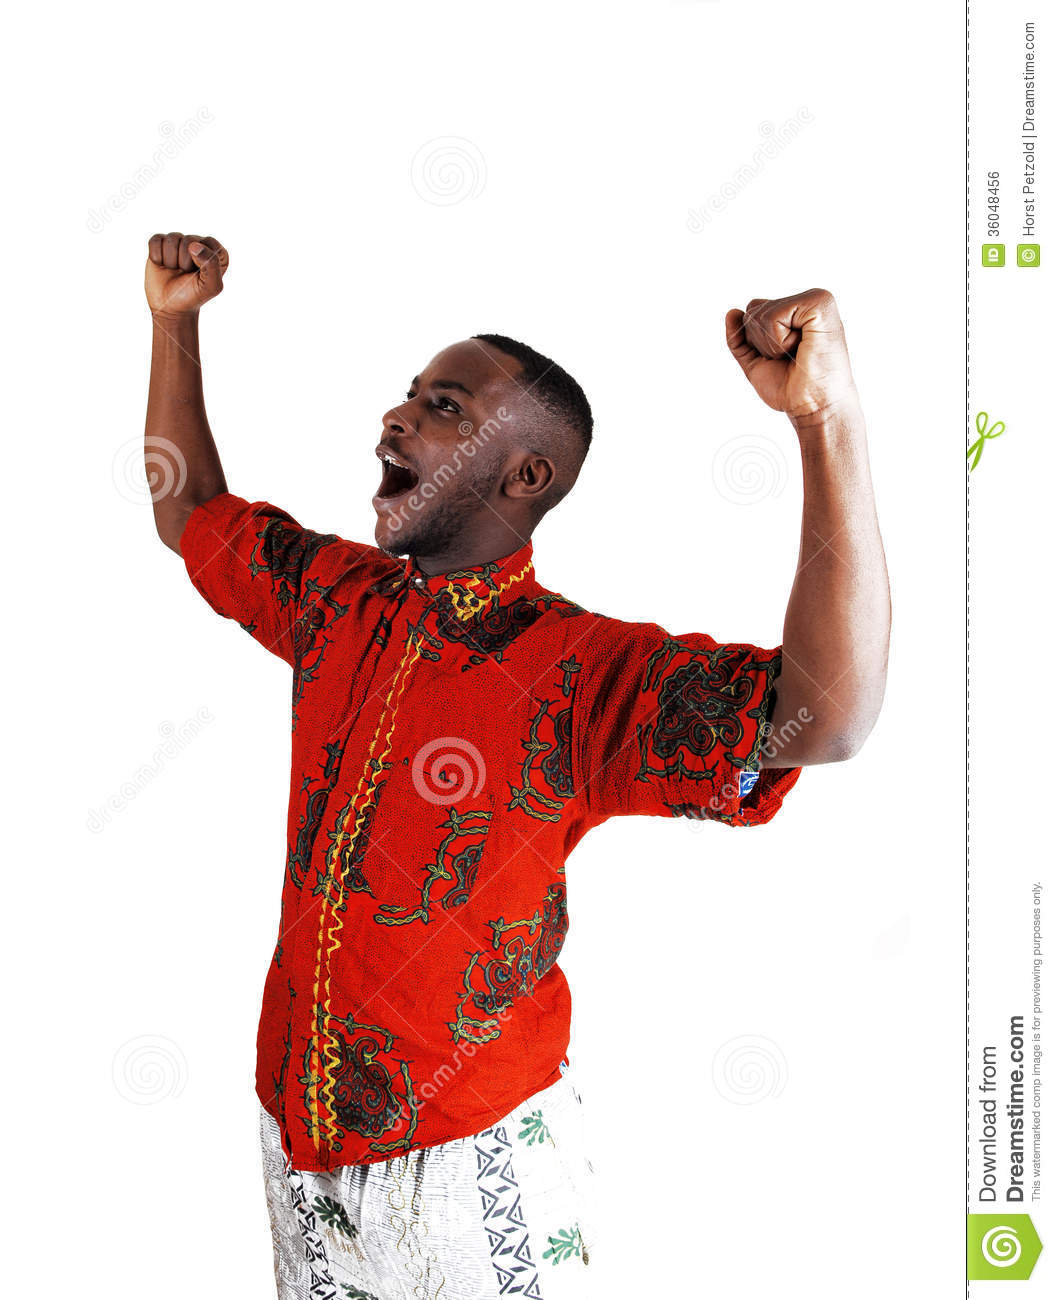 happy-black-man-very-african-american-young-raising-his-hands-white-background-36048456.jpg